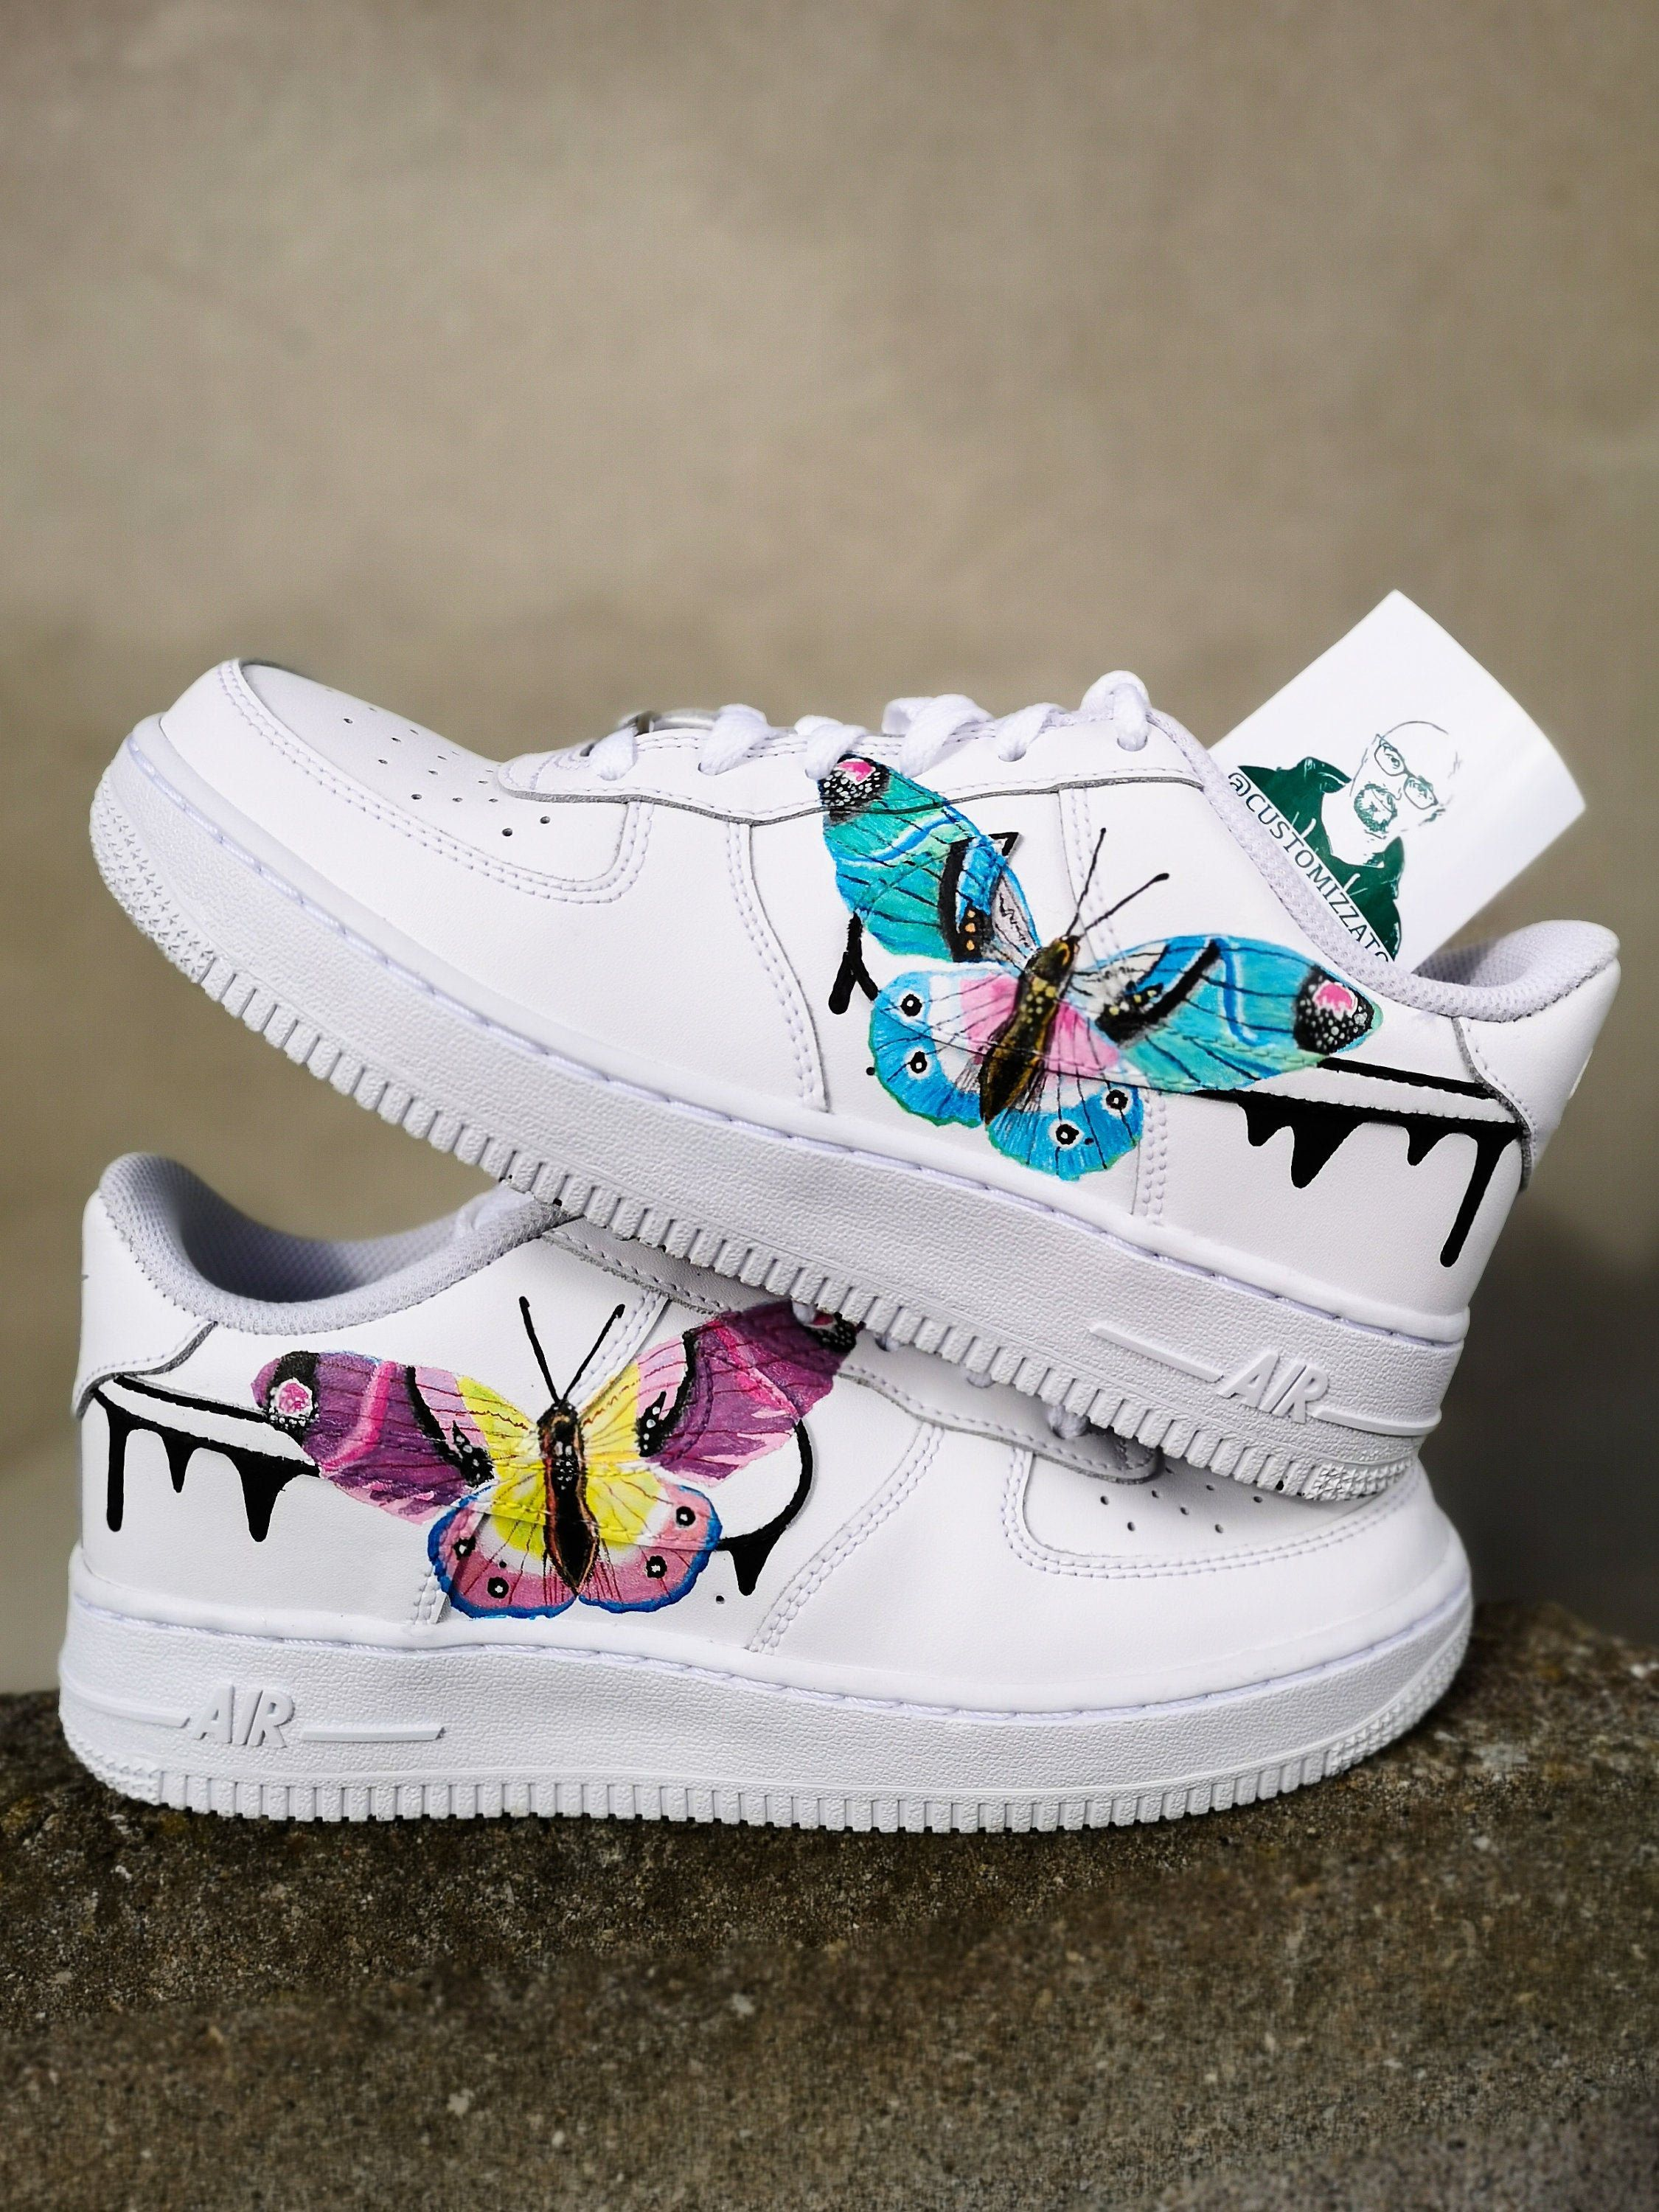 Personalizadas Nike Air Force 1 Mariposas Custom Sneakers Nike Air Force One Shoes Custom Nike Shoes